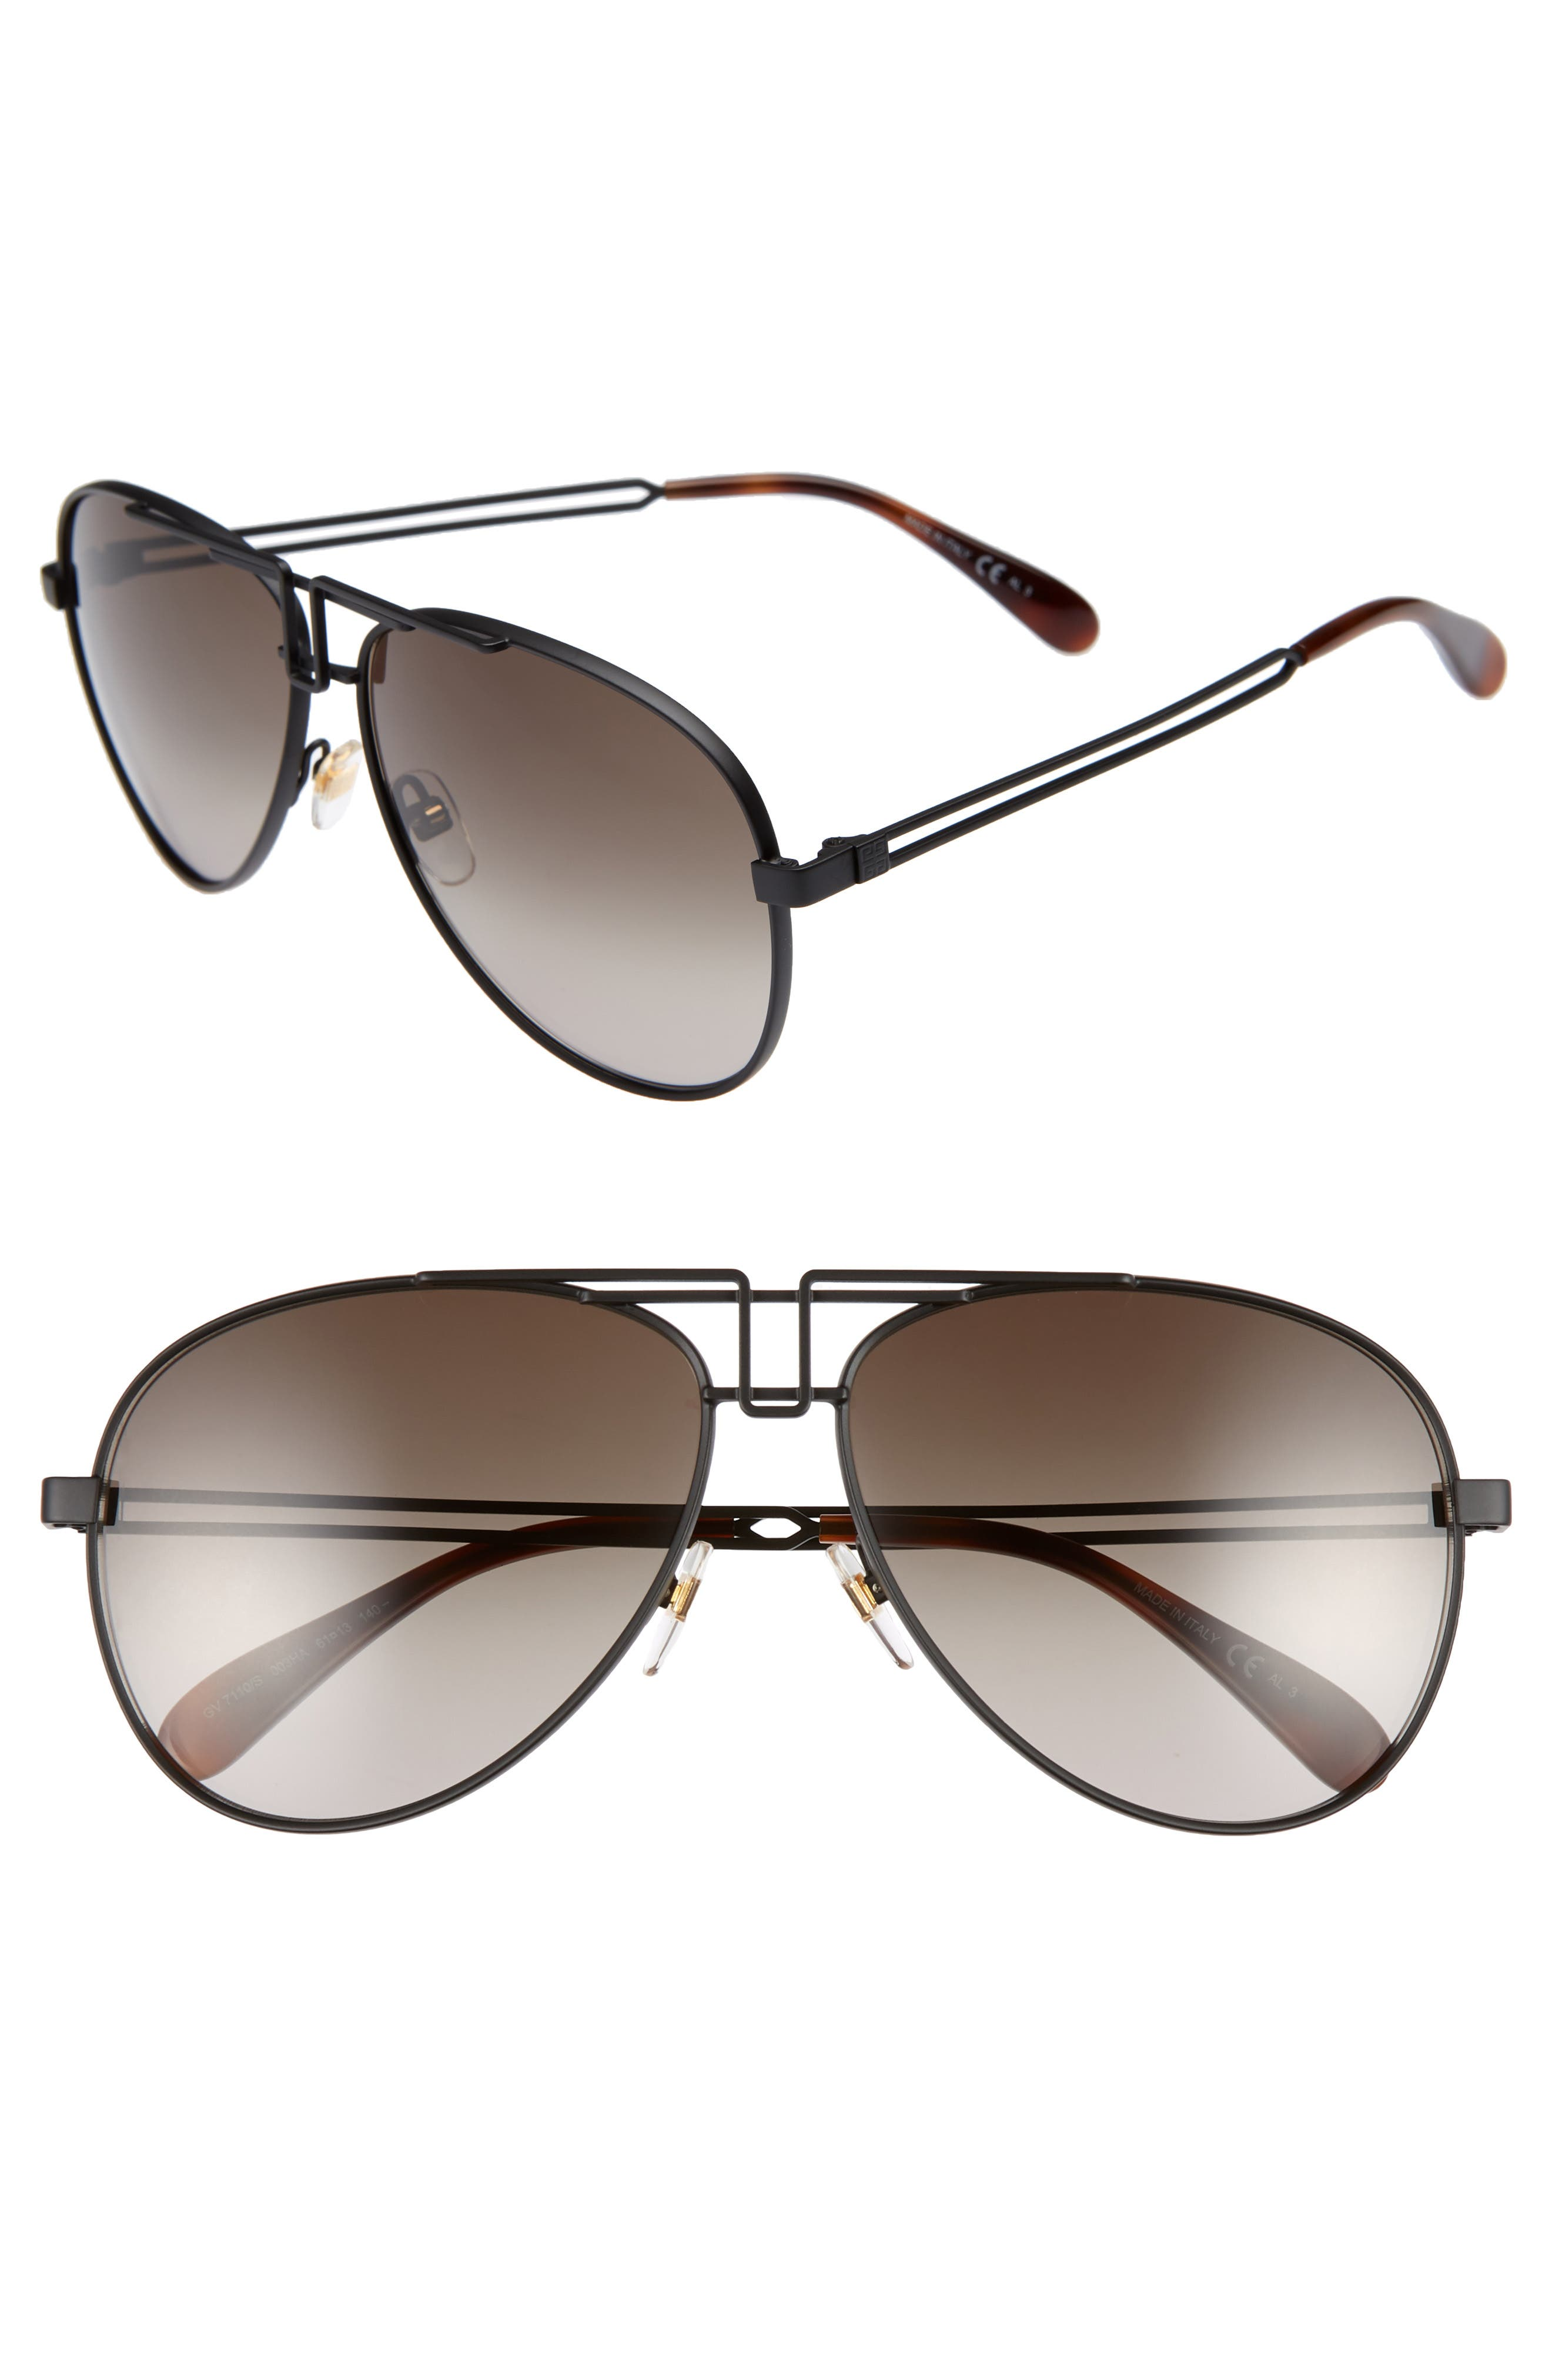 Givenchy 61Mm Aviator Sunglasses -